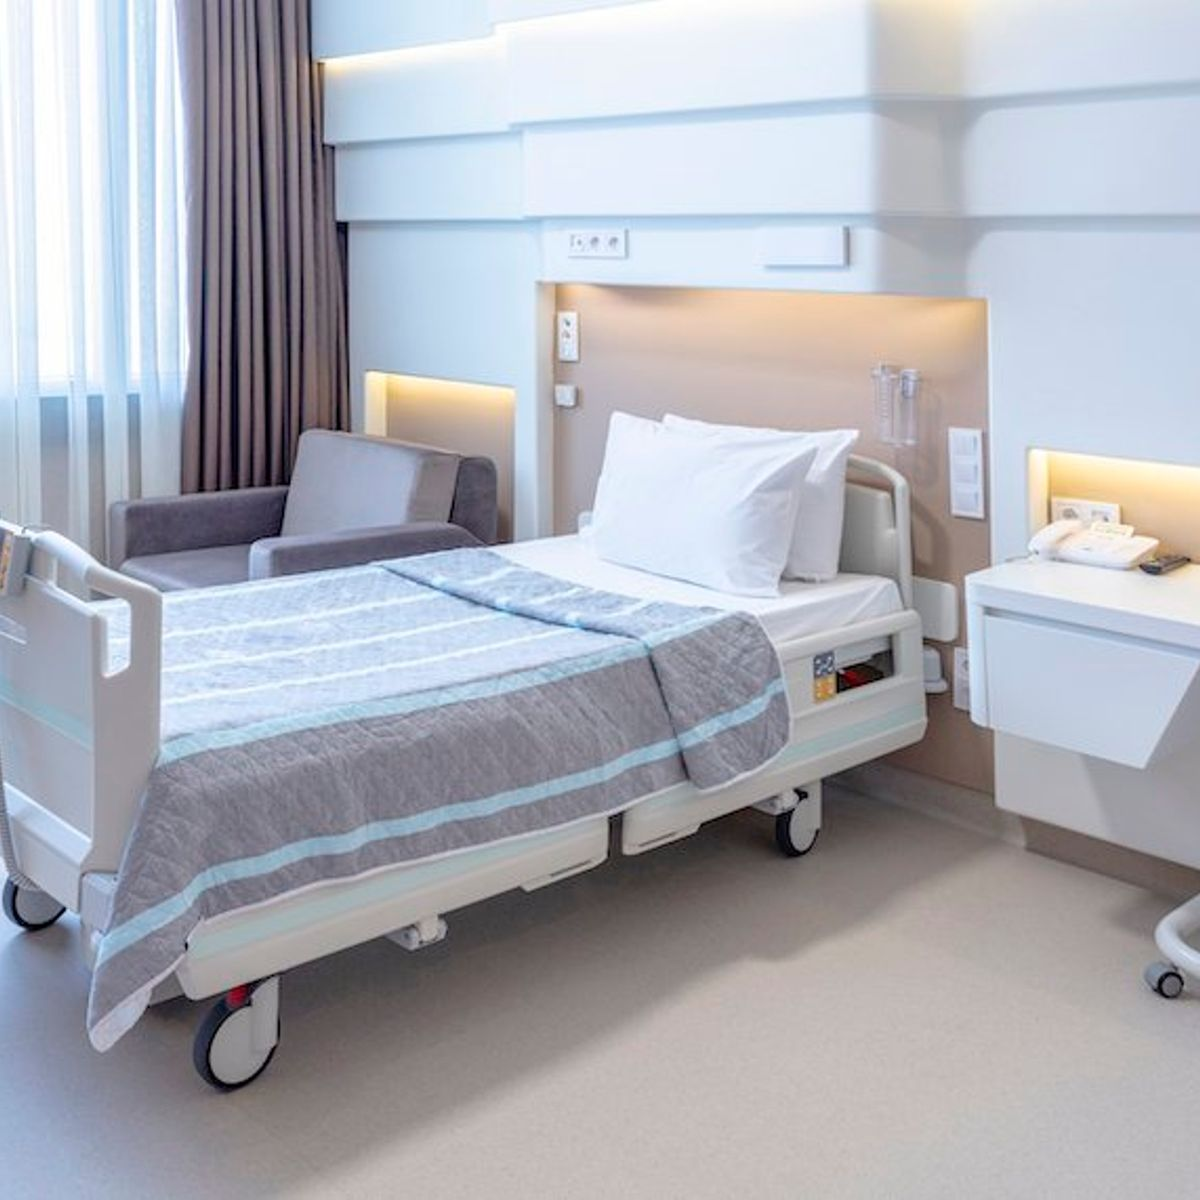 Maidesite Quality Medical Beds for Sale